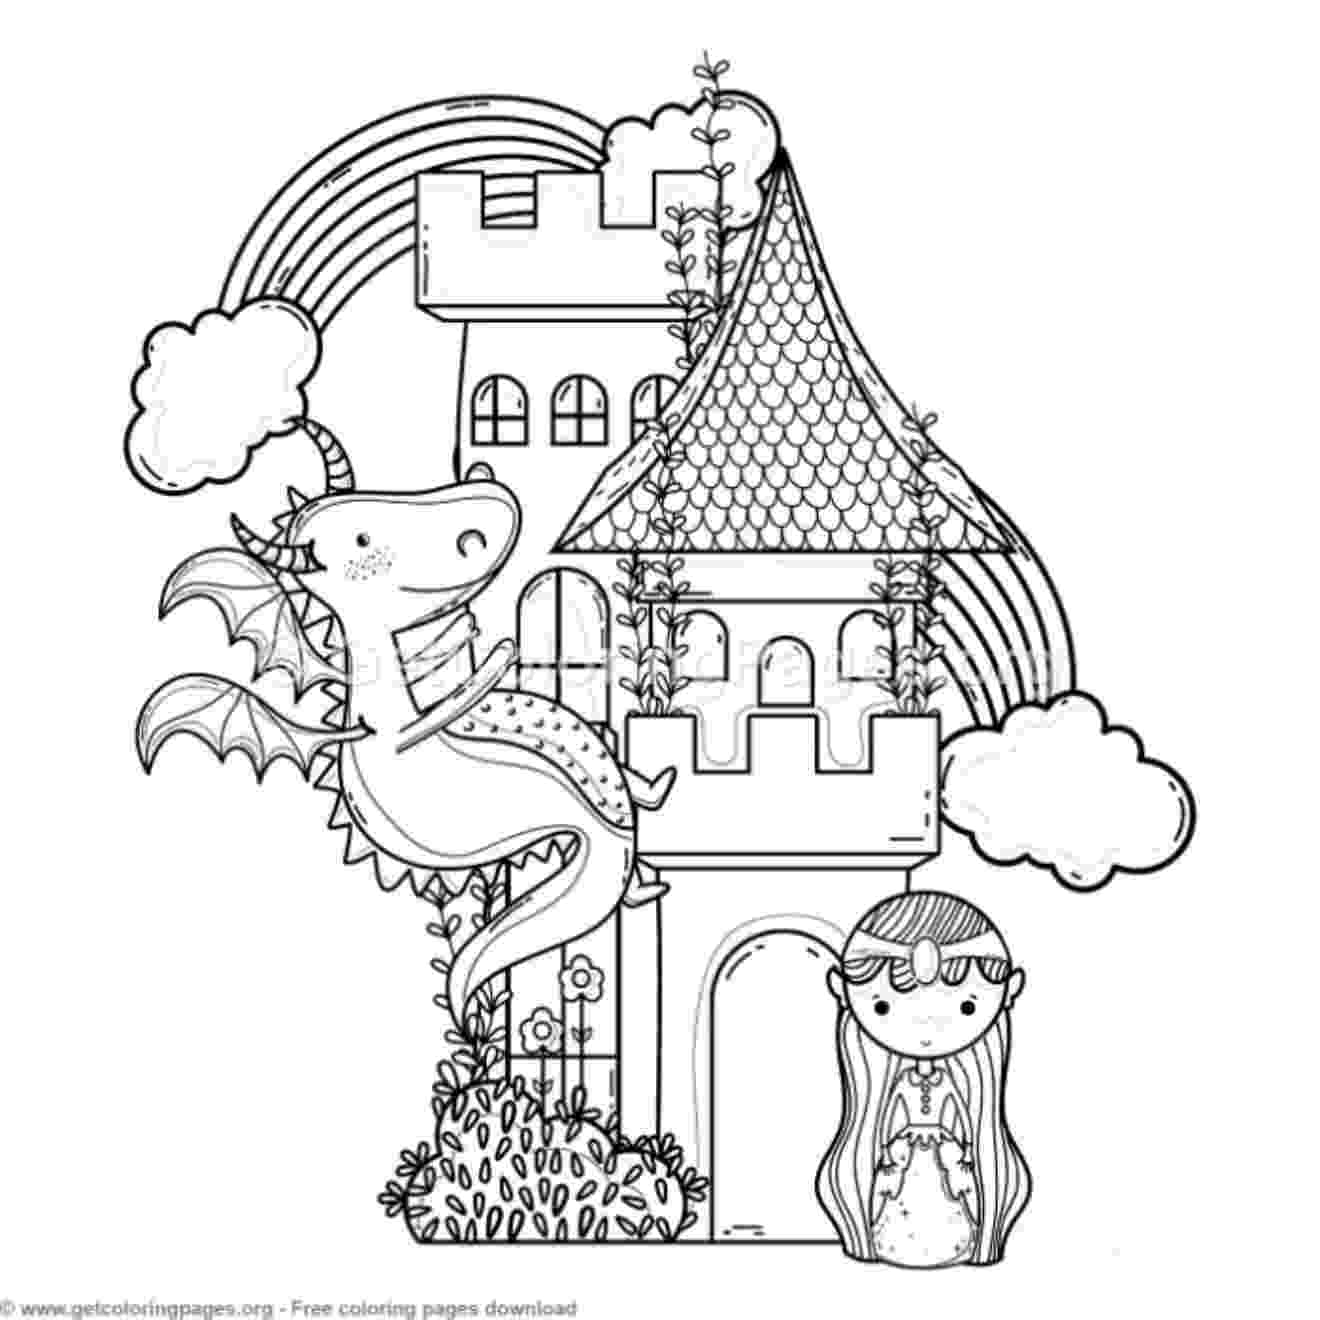 princess and castle coloring pages dibujos para colorear disney princess coloring pages and coloring pages princess castle